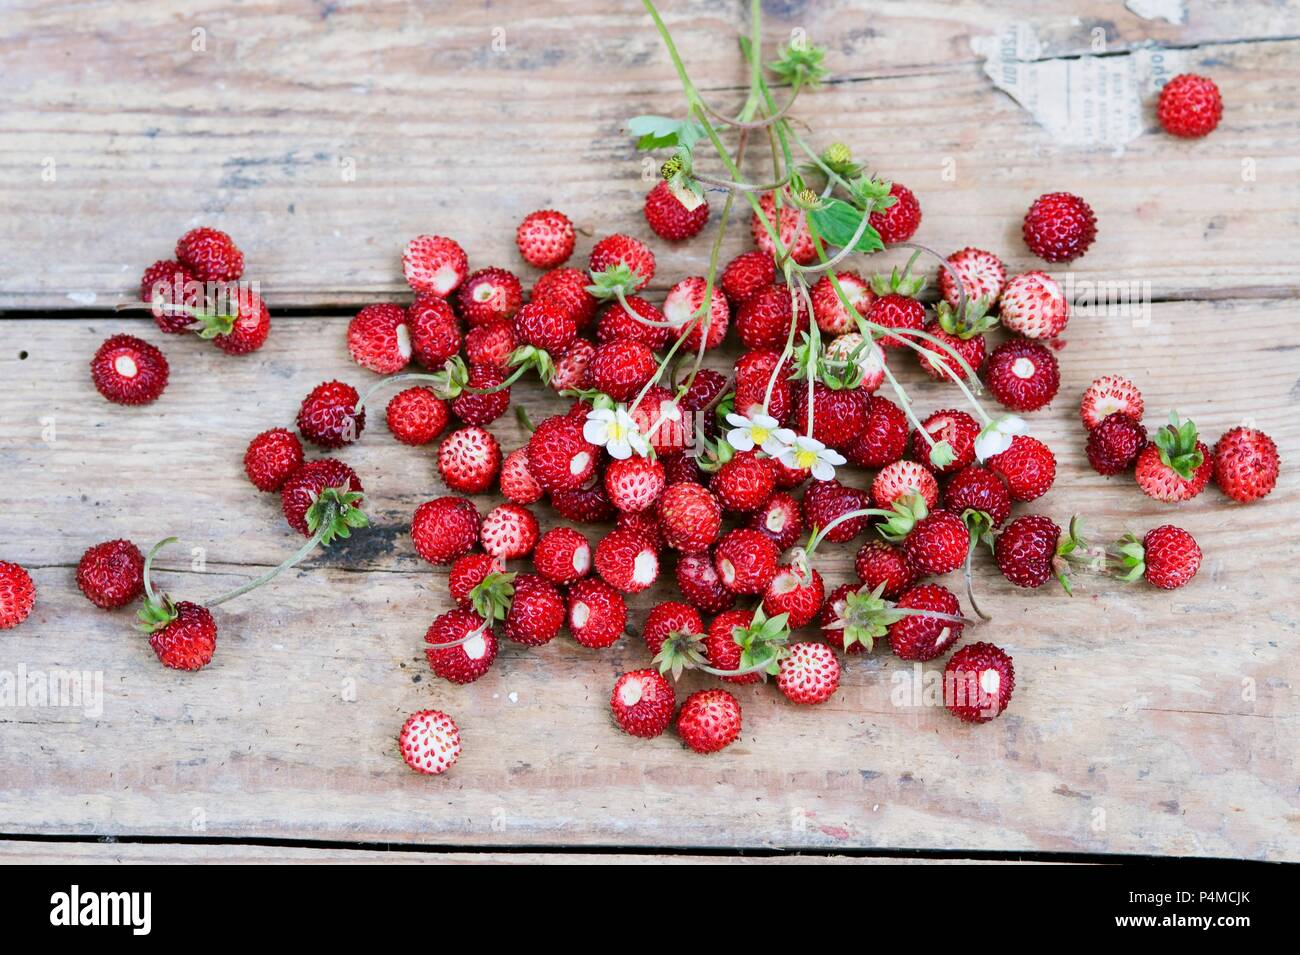 Wild strawberries with leaves and flowers on a wooden surface - Stock Image